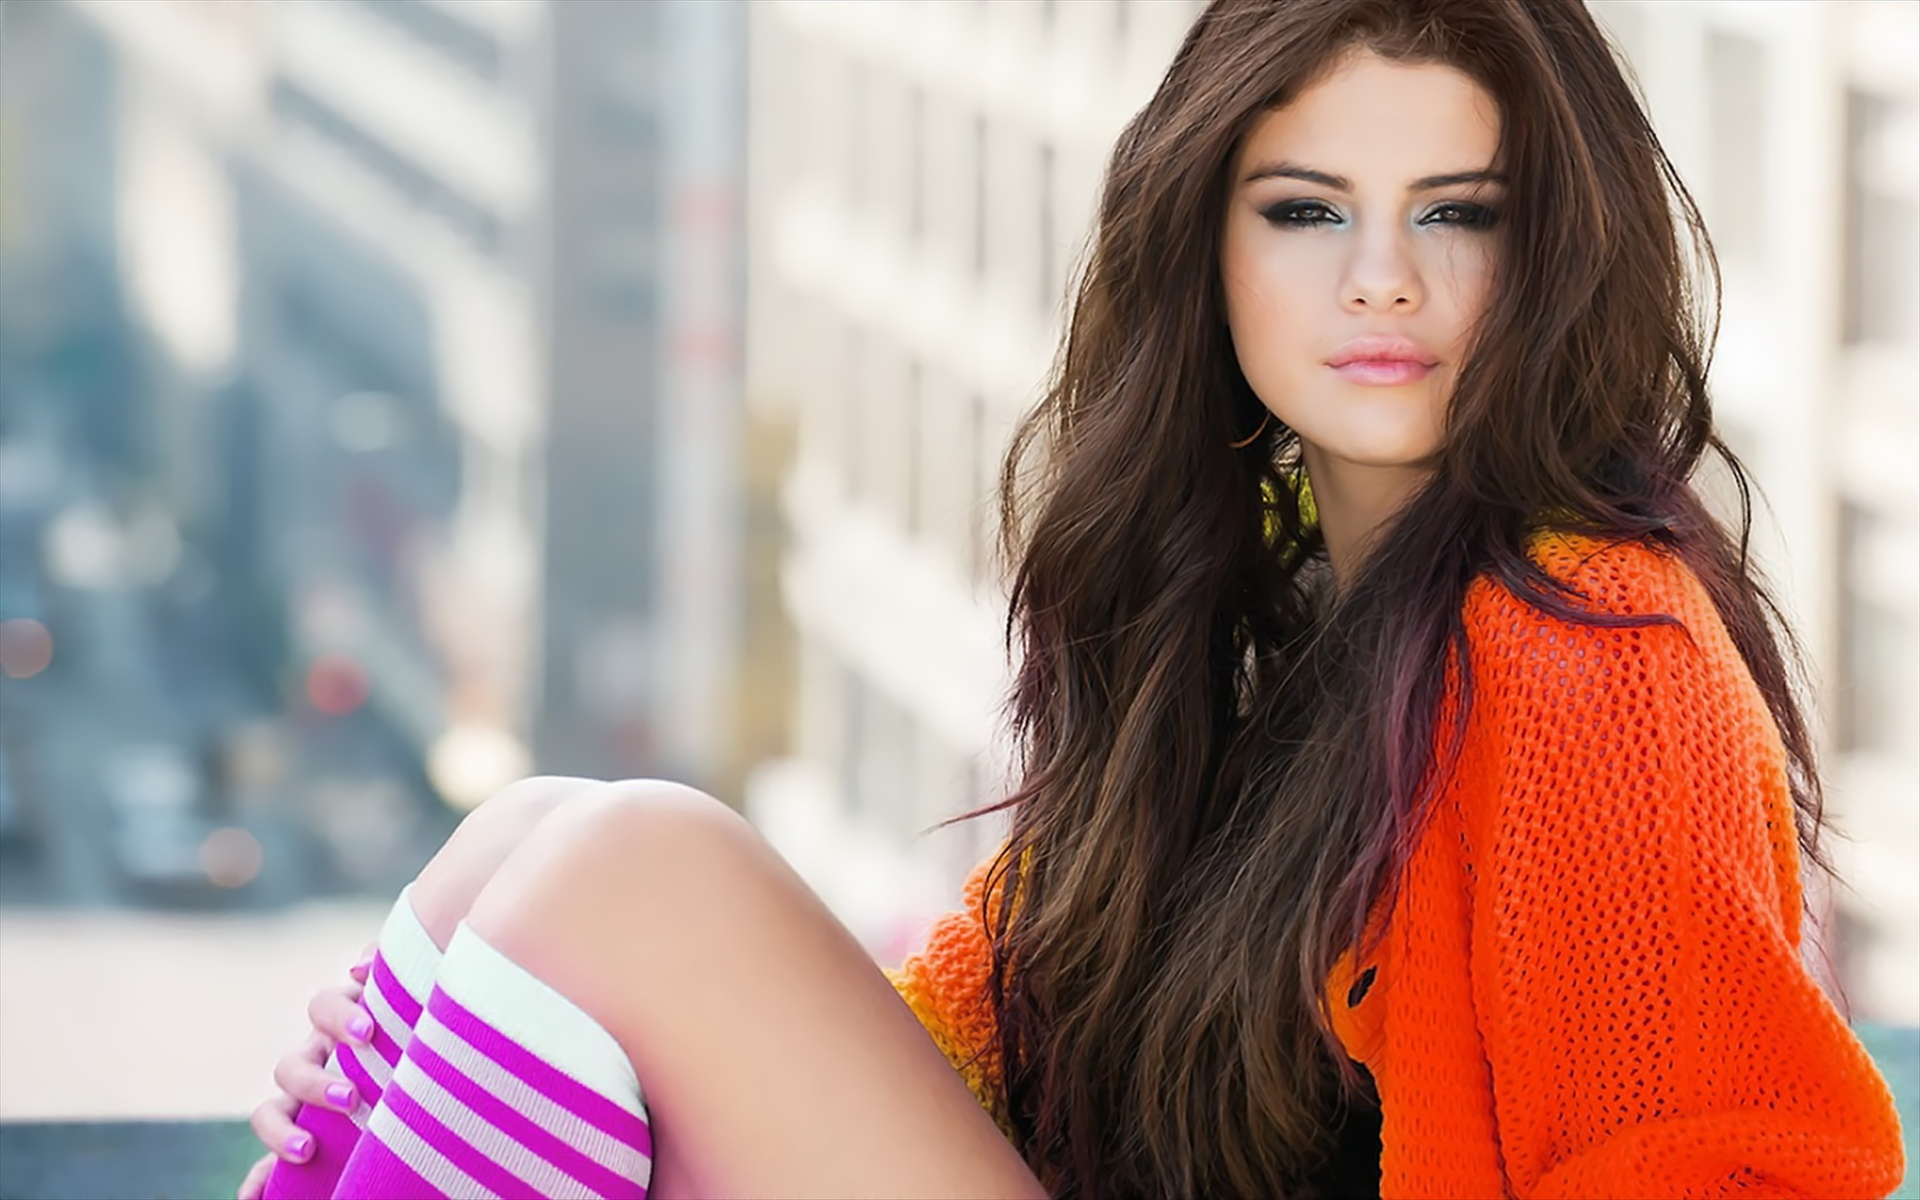 Selena gomez wallpaper hot 18516 1920x1200 px hdwallsource selena gomez wallpaper hot 18516 voltagebd Image collections